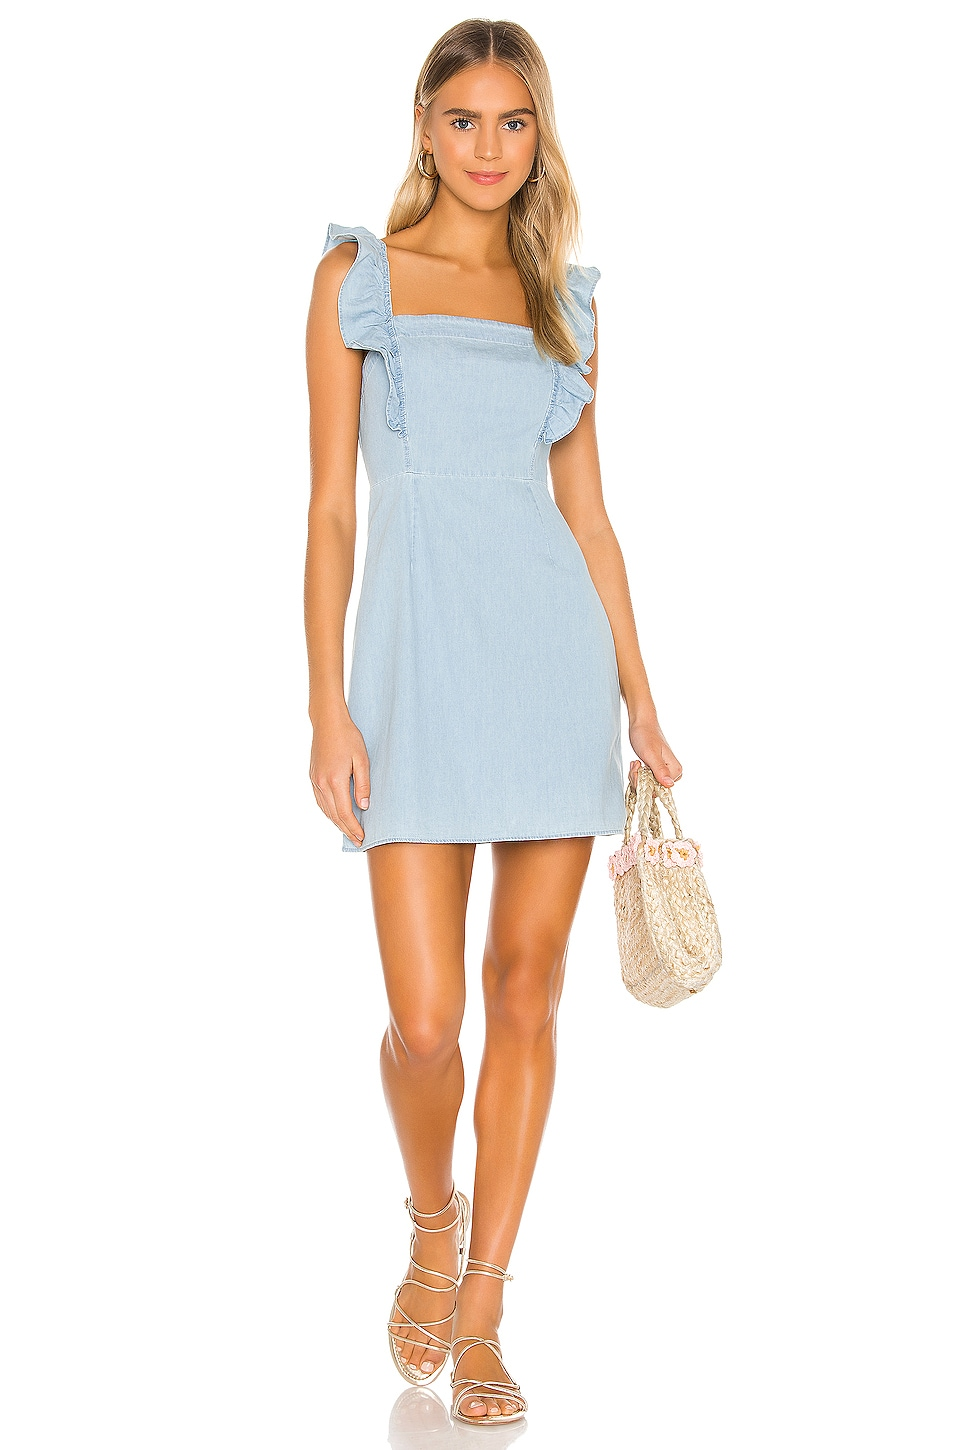 JACK by BB Dakota Chambray All Day Dress             BB Dakota                                                                                                       CA$ 108.89 16